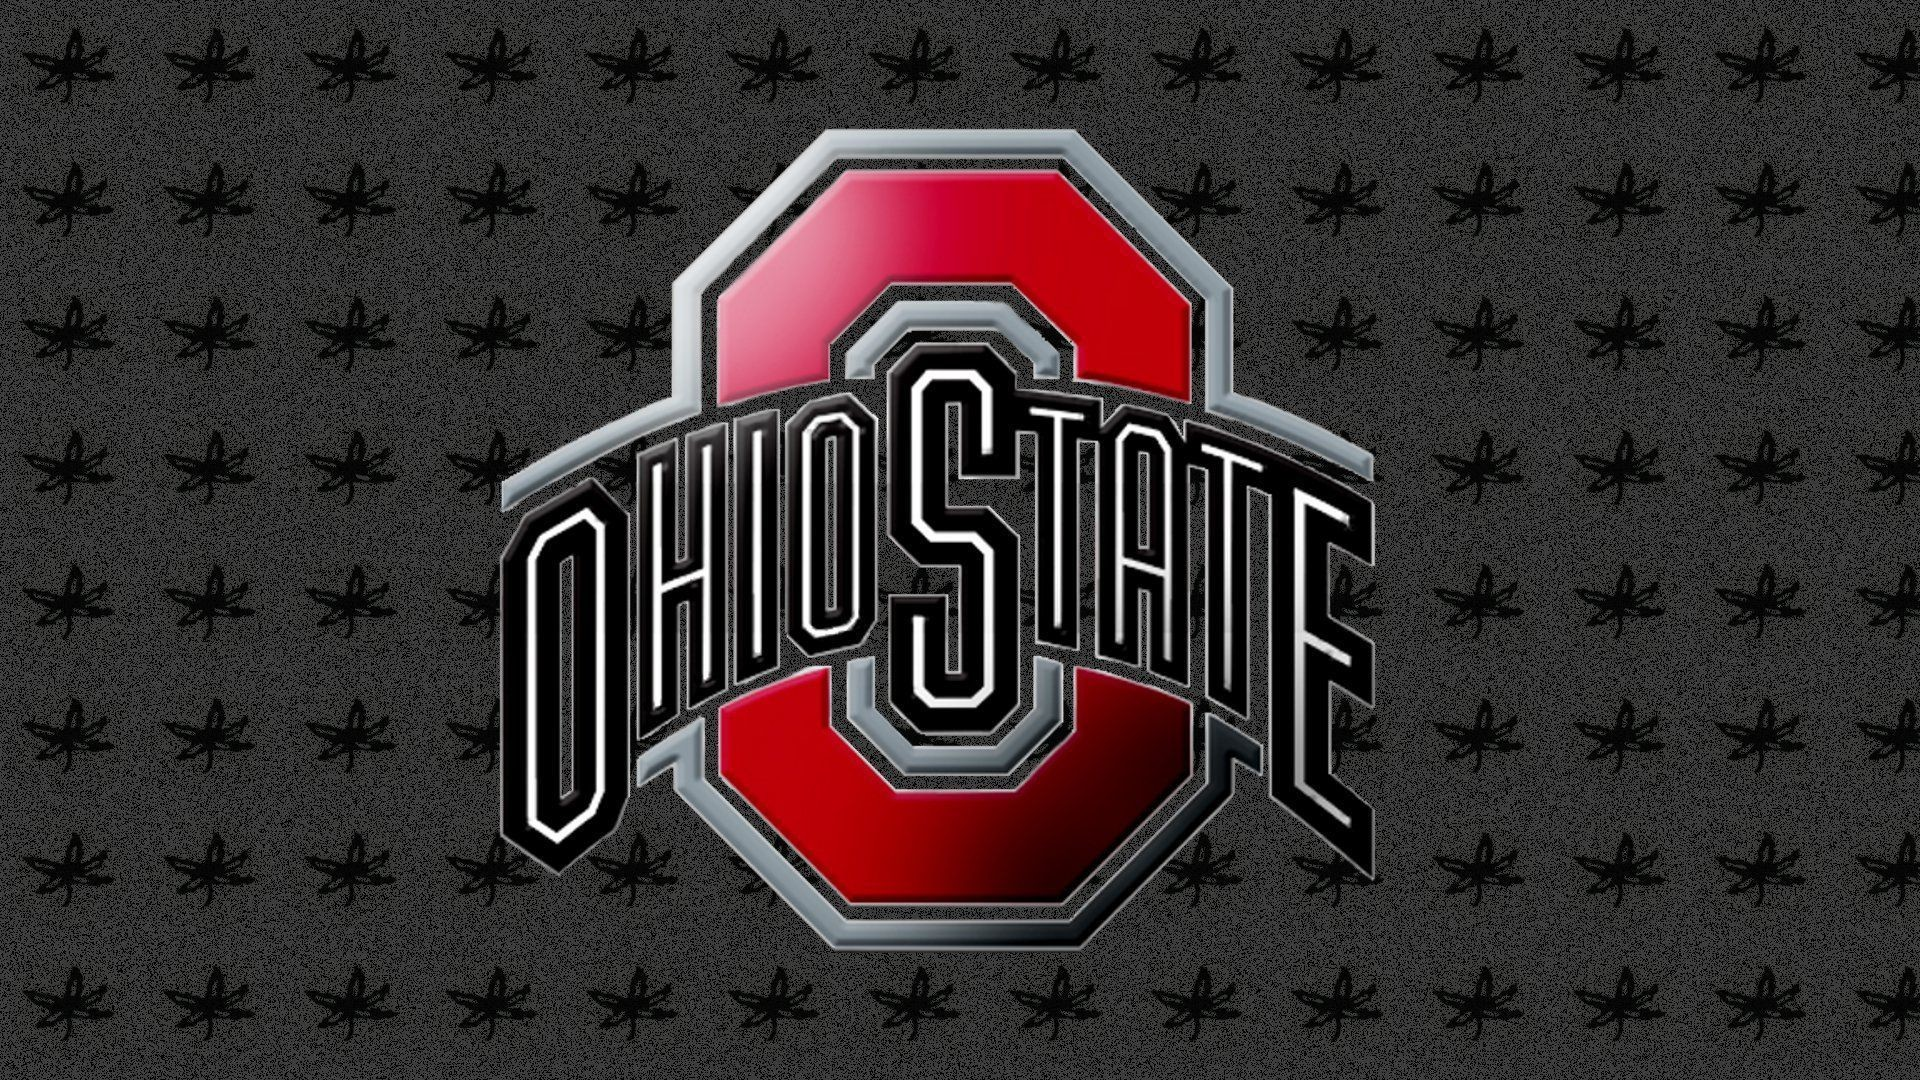 College Football Wallpapers – Wallpaper Cave   Wallpapers   Pinterest   Football  wallpaper, College football and Wallpaper